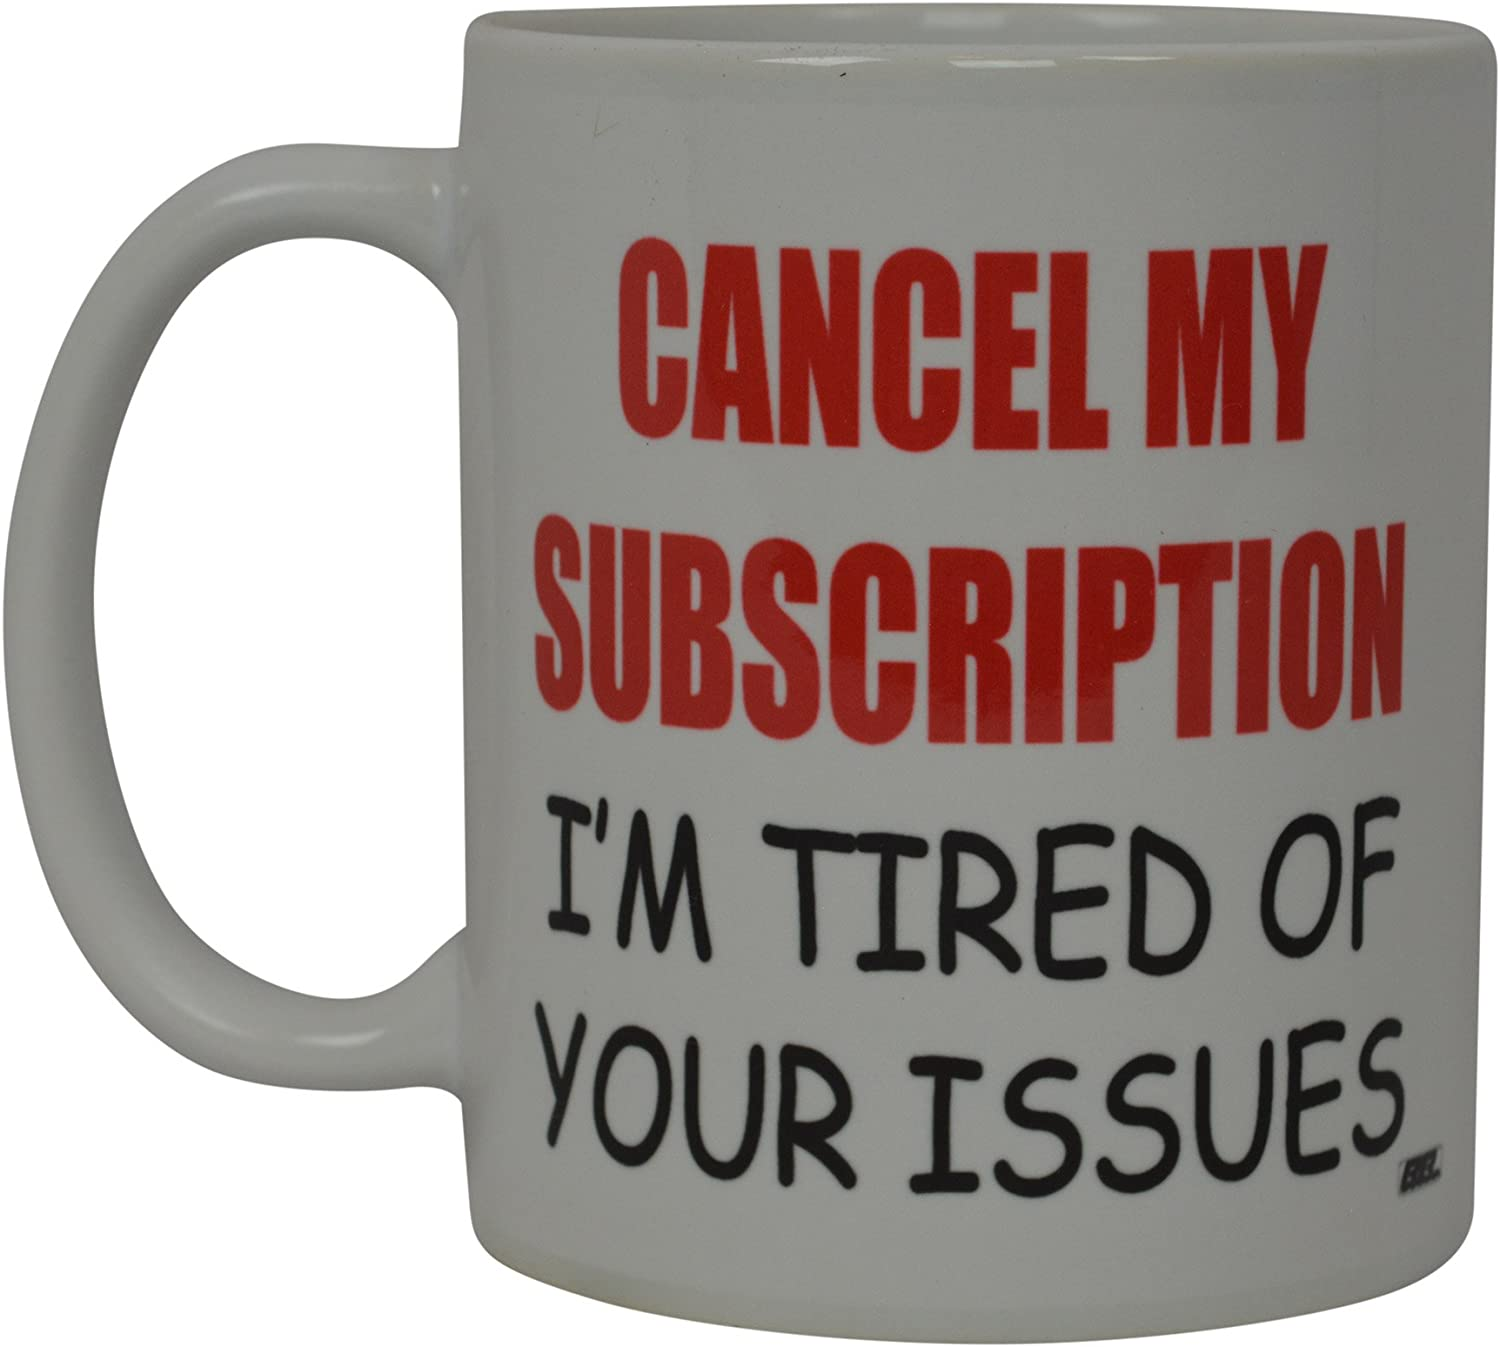 Best Funny Coffee Mug Cancel My Subscription I'm Tired Of Your Issues Novelty Cup Joke Great Gag Gift Idea For Men Women Office Work Adult Humor Employee Boss Coworkers (Subscription)